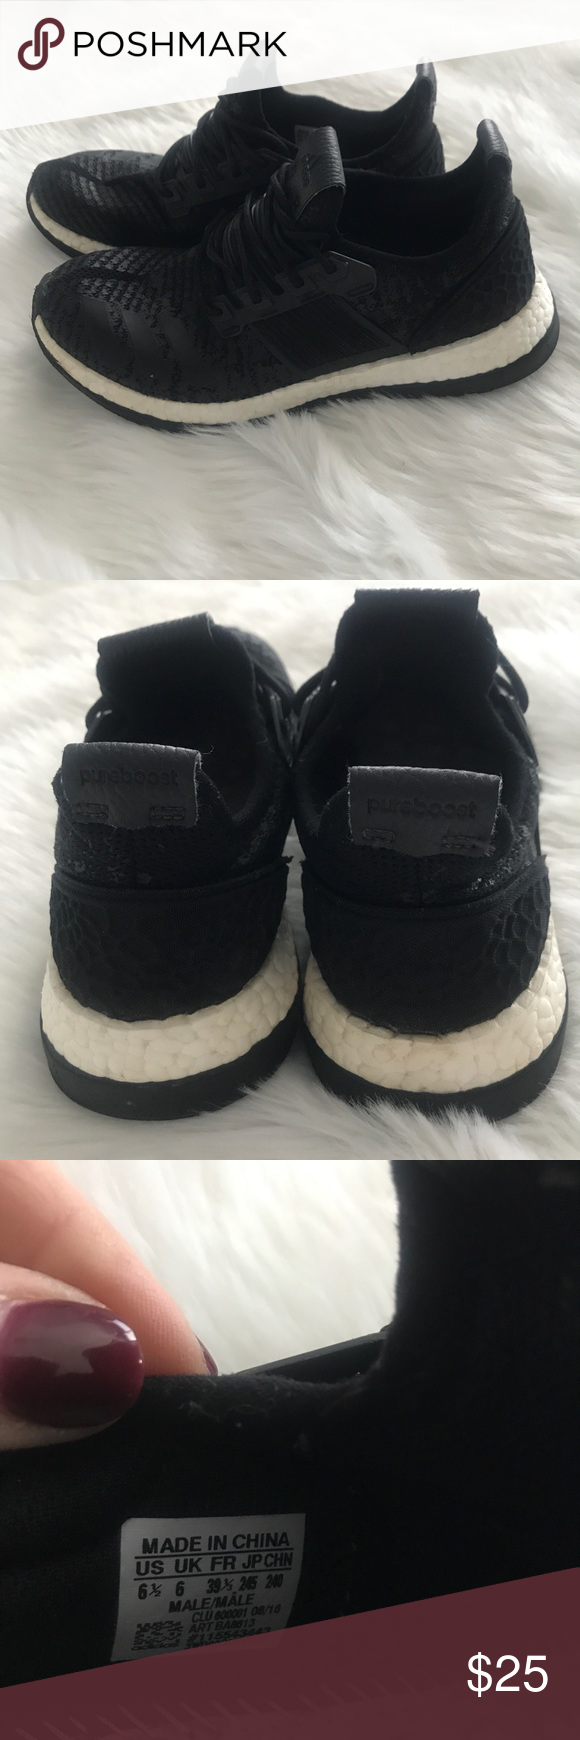 268d5981024f8 Boys Adidas Pureboost ZG Size 6.5 Super cool black Adidas Pureboost ZG!  Lots of life left in these great shoes. Size 6.5 adidas Shoes Sneakers